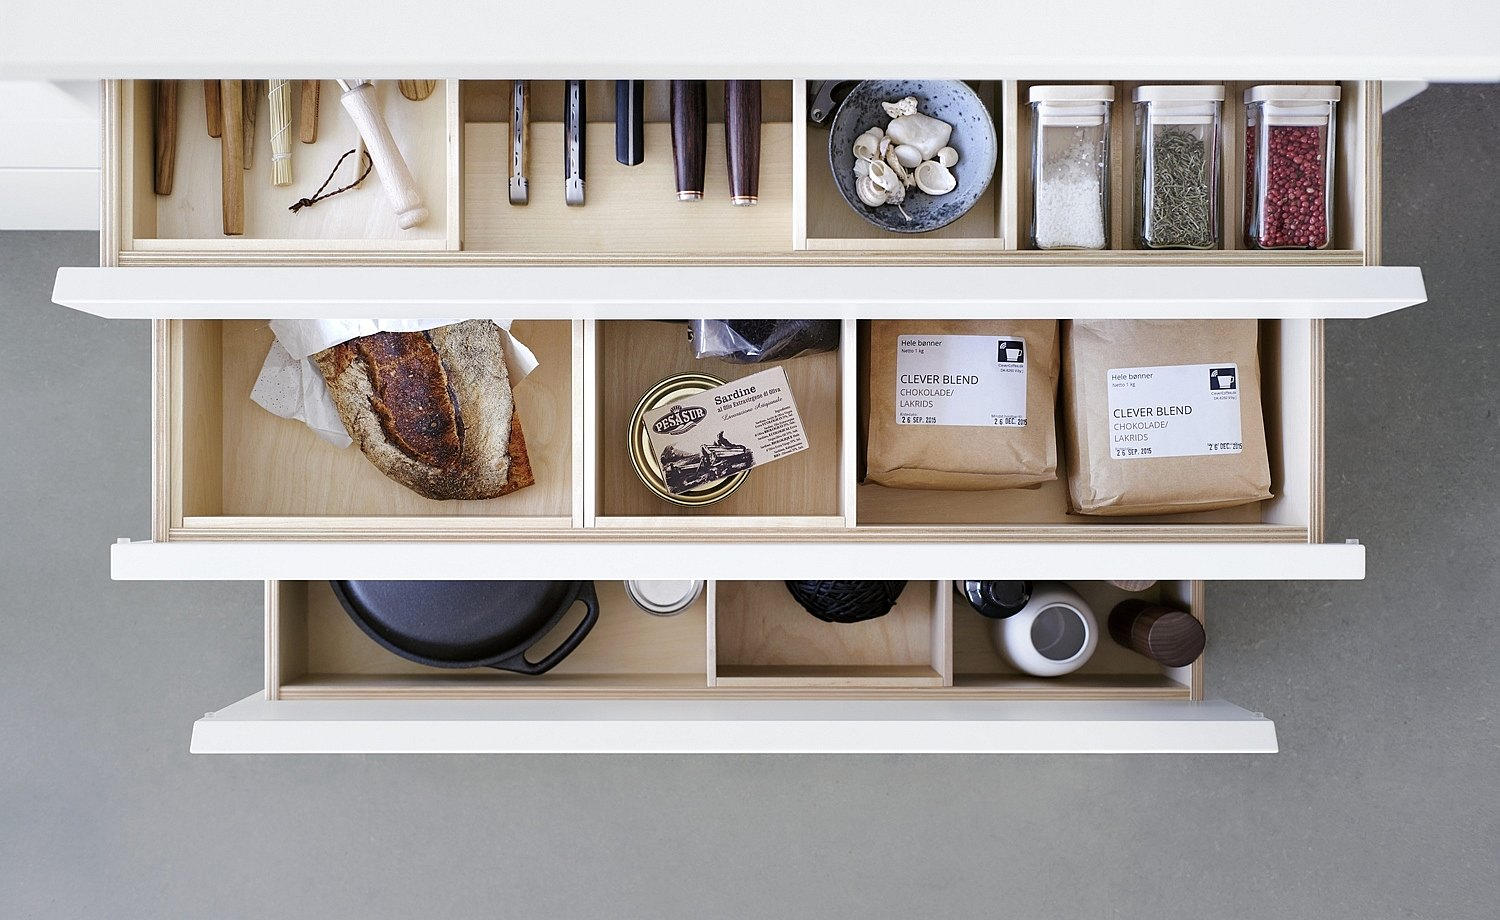 Birch wood in the drawers brings warmth and character to the interior of the b1